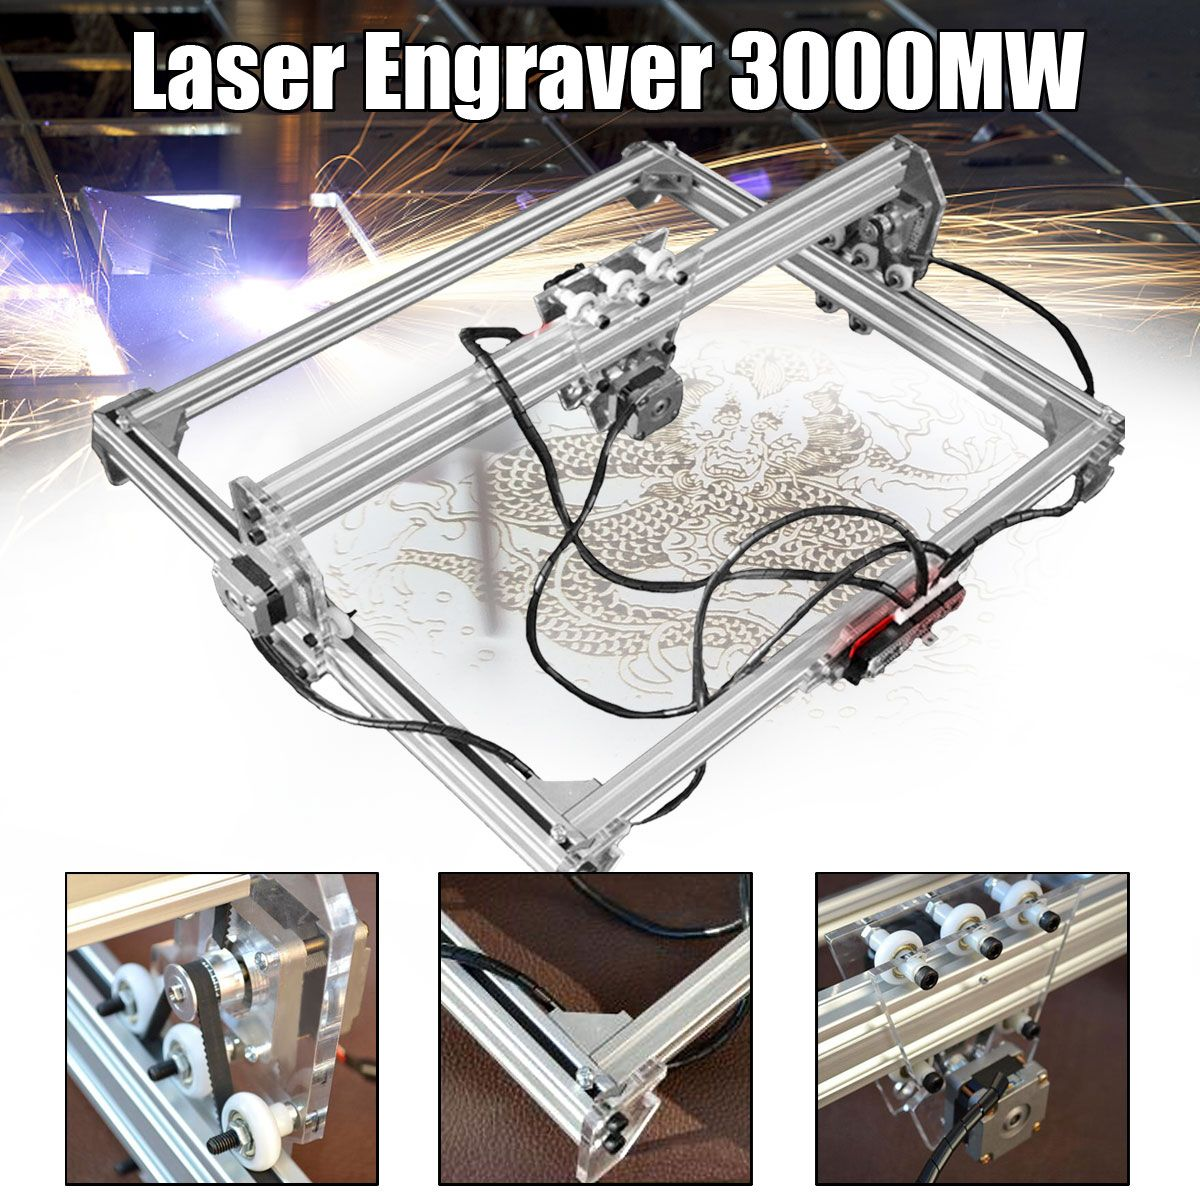 50*65cm 3000MW Mini Blue Laser Engraving Engraver Machine DC 12V DIY Desktop CNC Wood Cutter/Printer/Power Adjust+ Laser Goggles